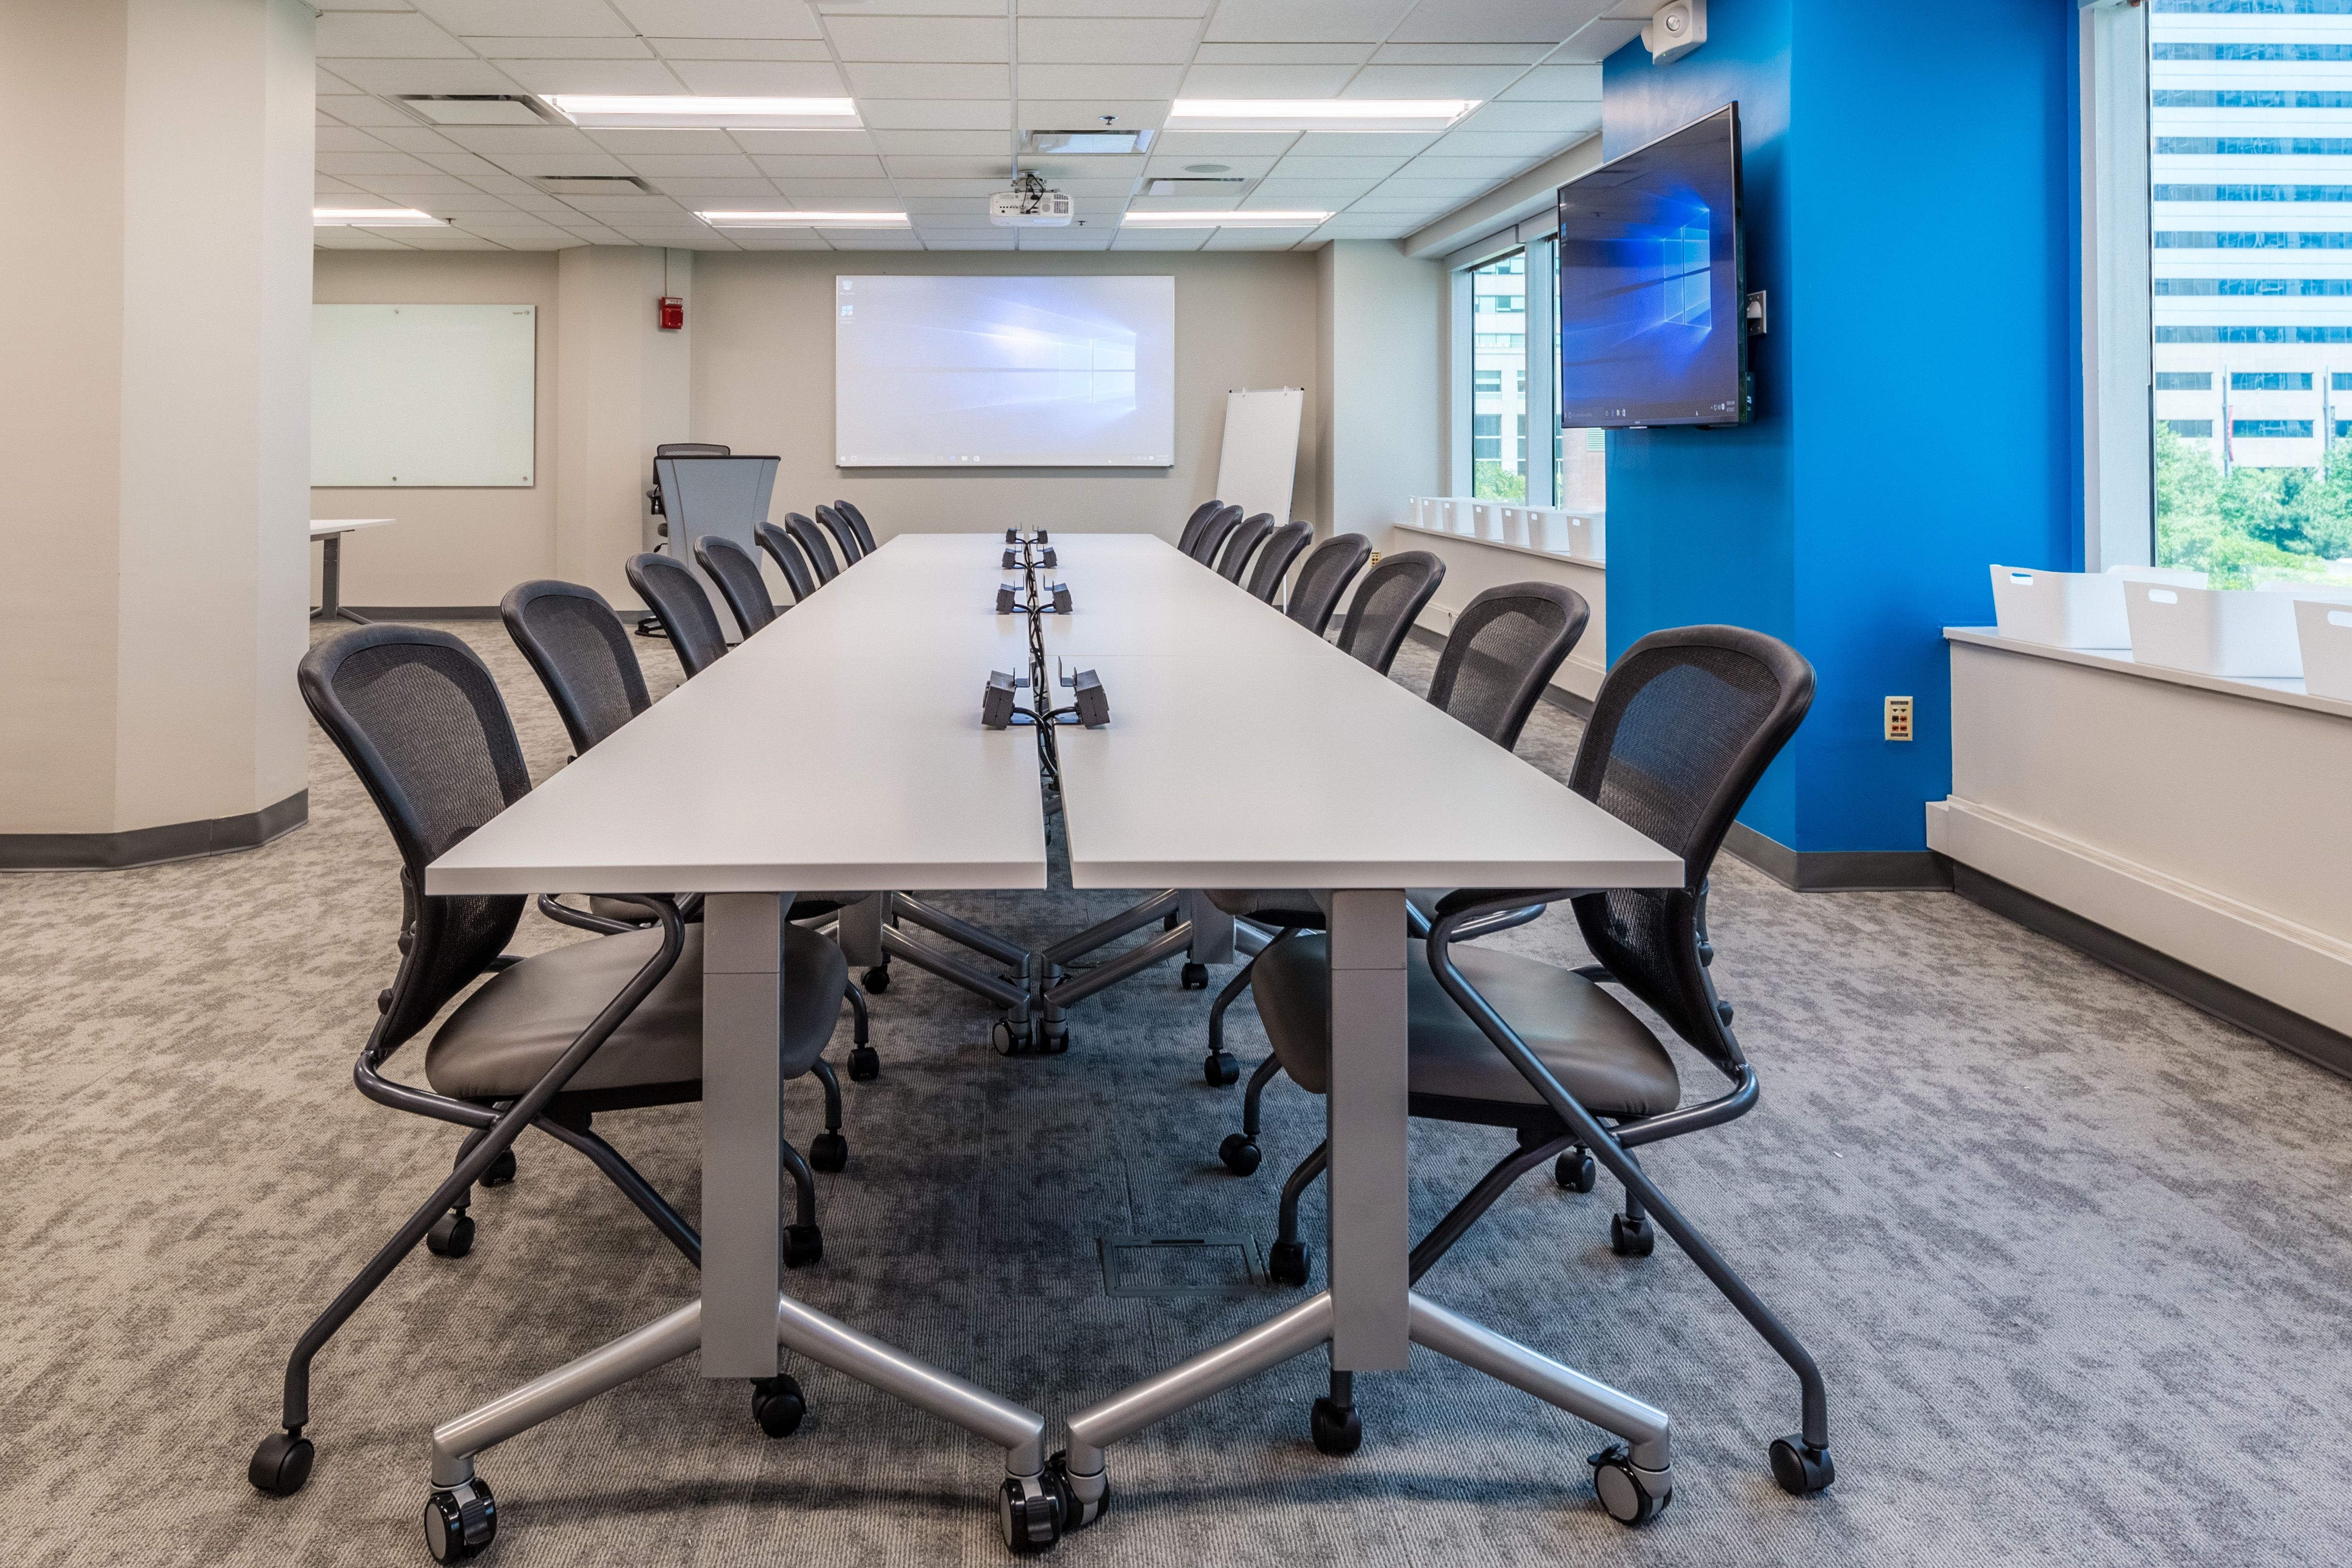 Conference Room For Rent In Nj Rooms For Rent Meeting Room Rent